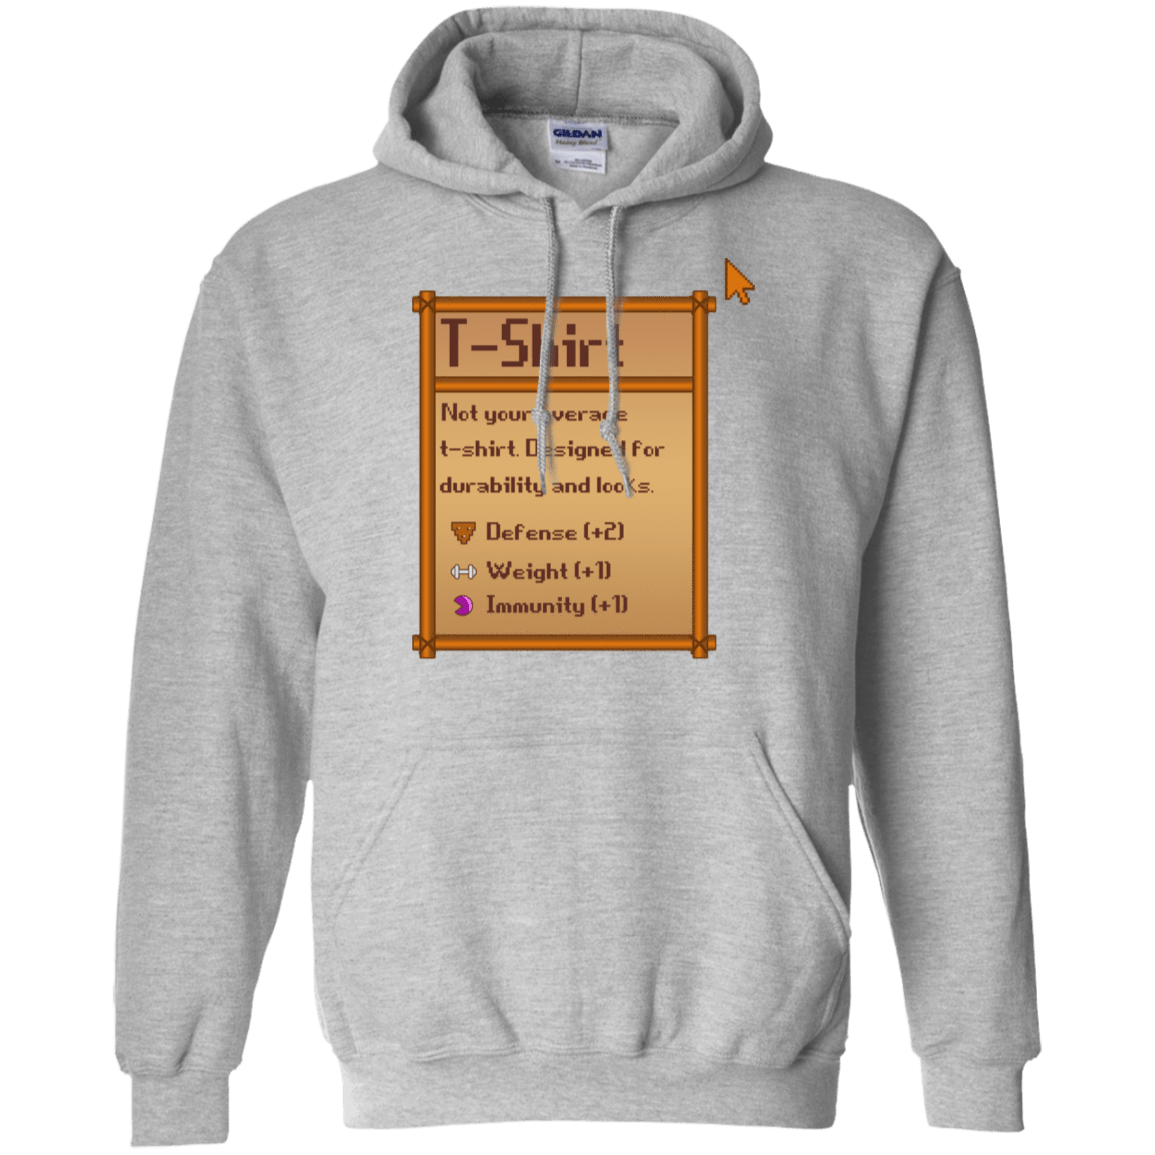 Stardew Valley T-Shirt 541-4741-72955965-23111 - Tee Ript